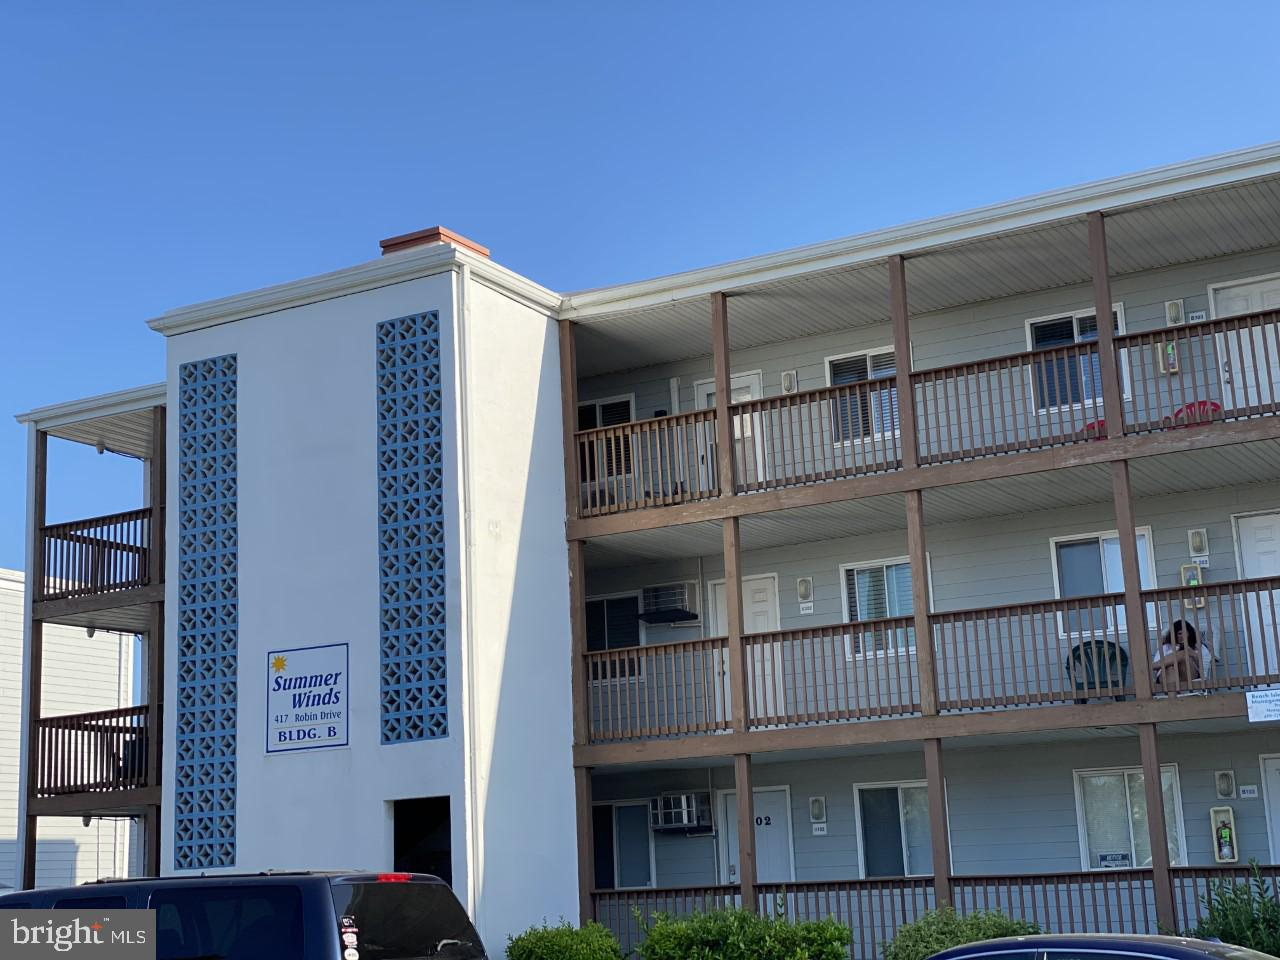 Don't miss the opportunity to own this 2 bedroom 1 bath Condo near Jolly Rogers Amusement park and S